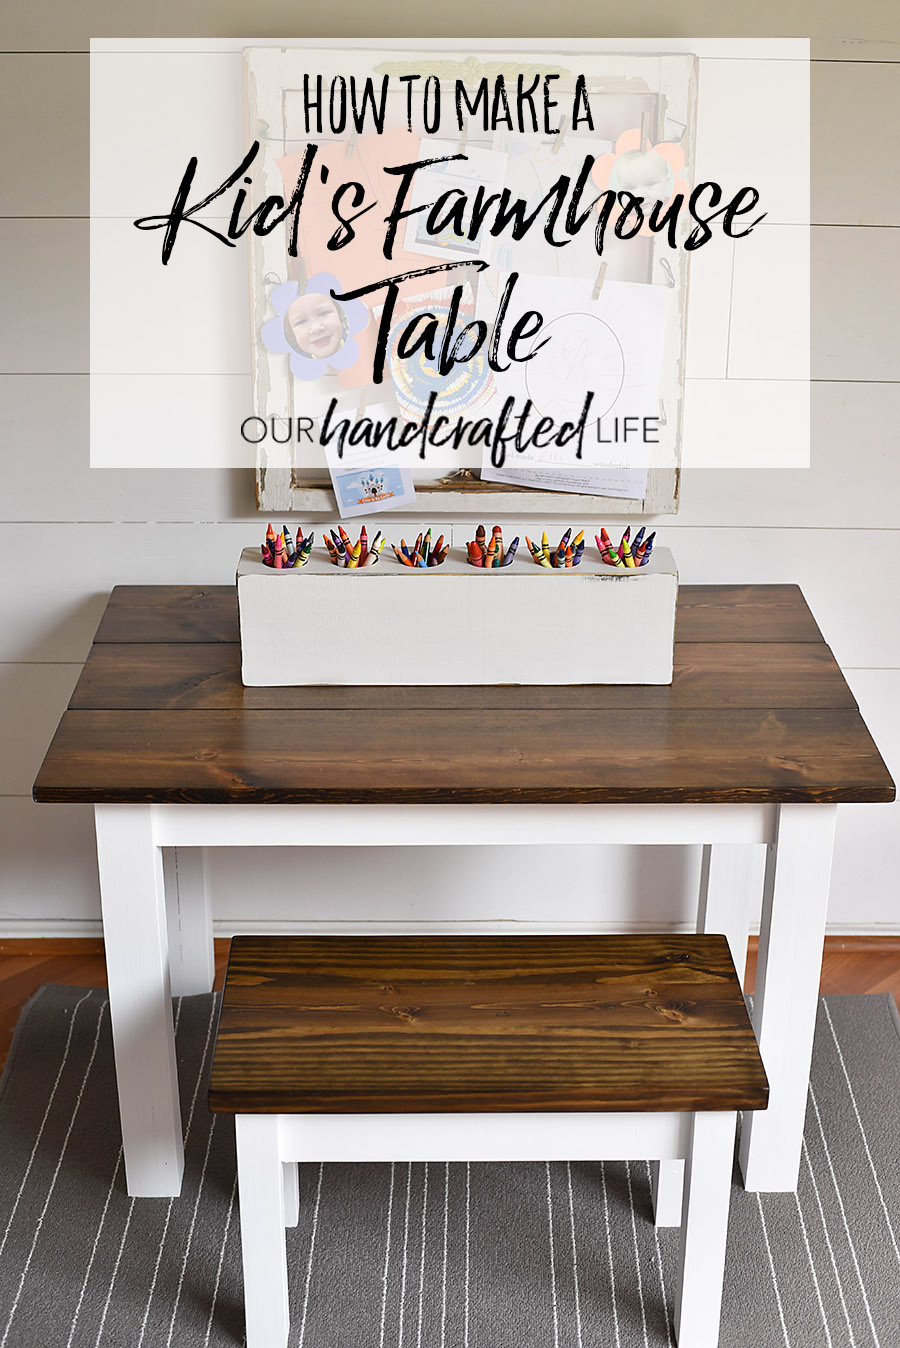 Sensational How To Make A Diy Farmhouse Kids Table Our Handcrafted Life Bralicious Painted Fabric Chair Ideas Braliciousco